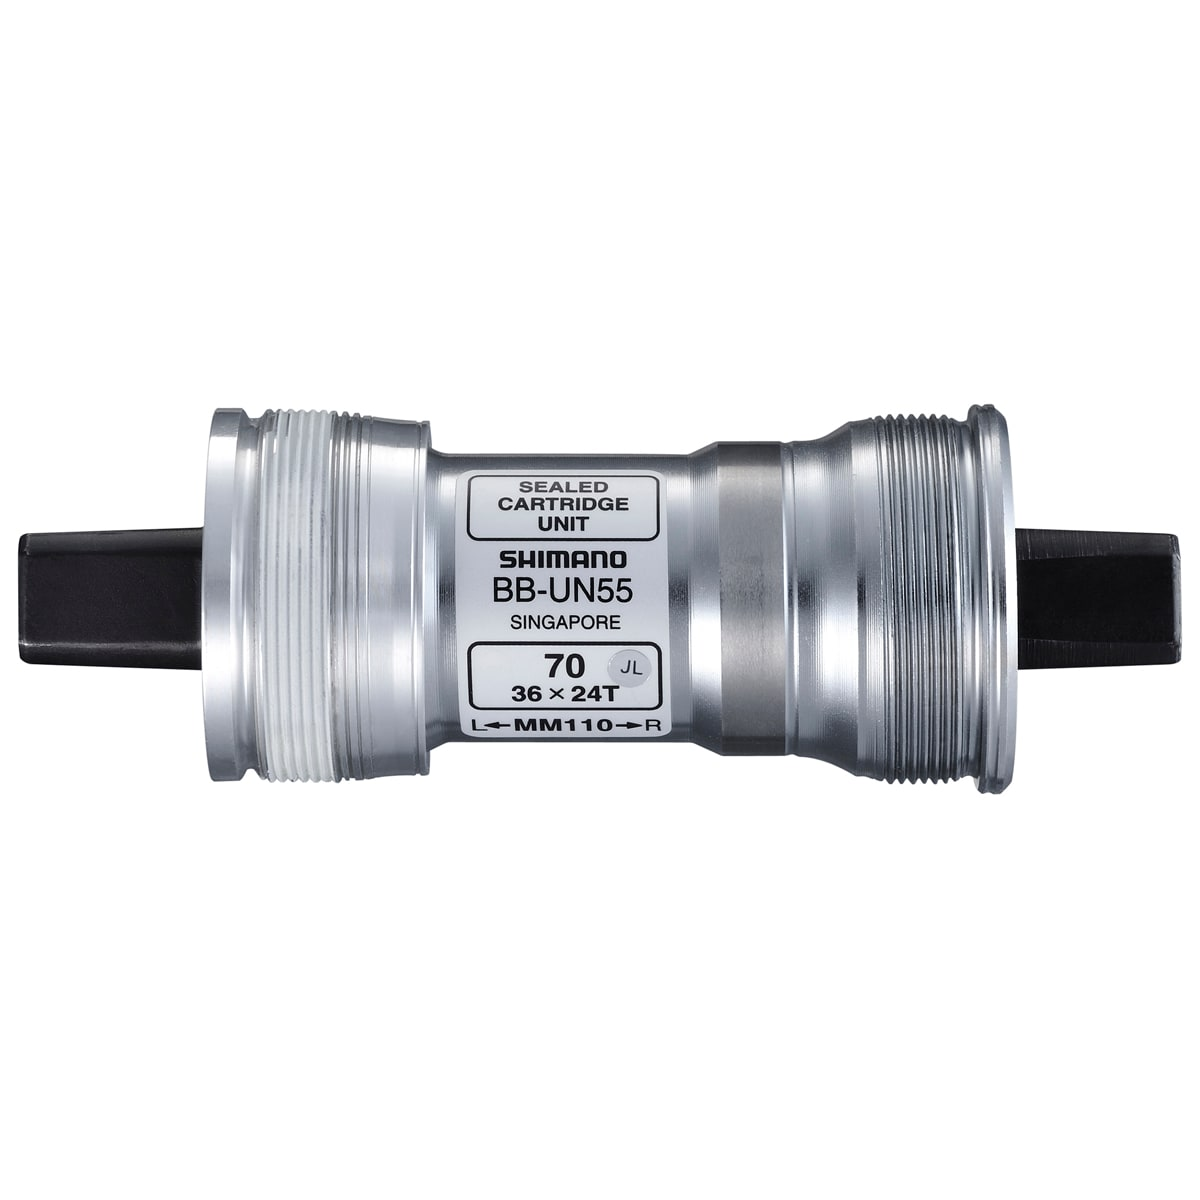 Shimano Vevlager, Square BSA BB-UN55 118/73mm